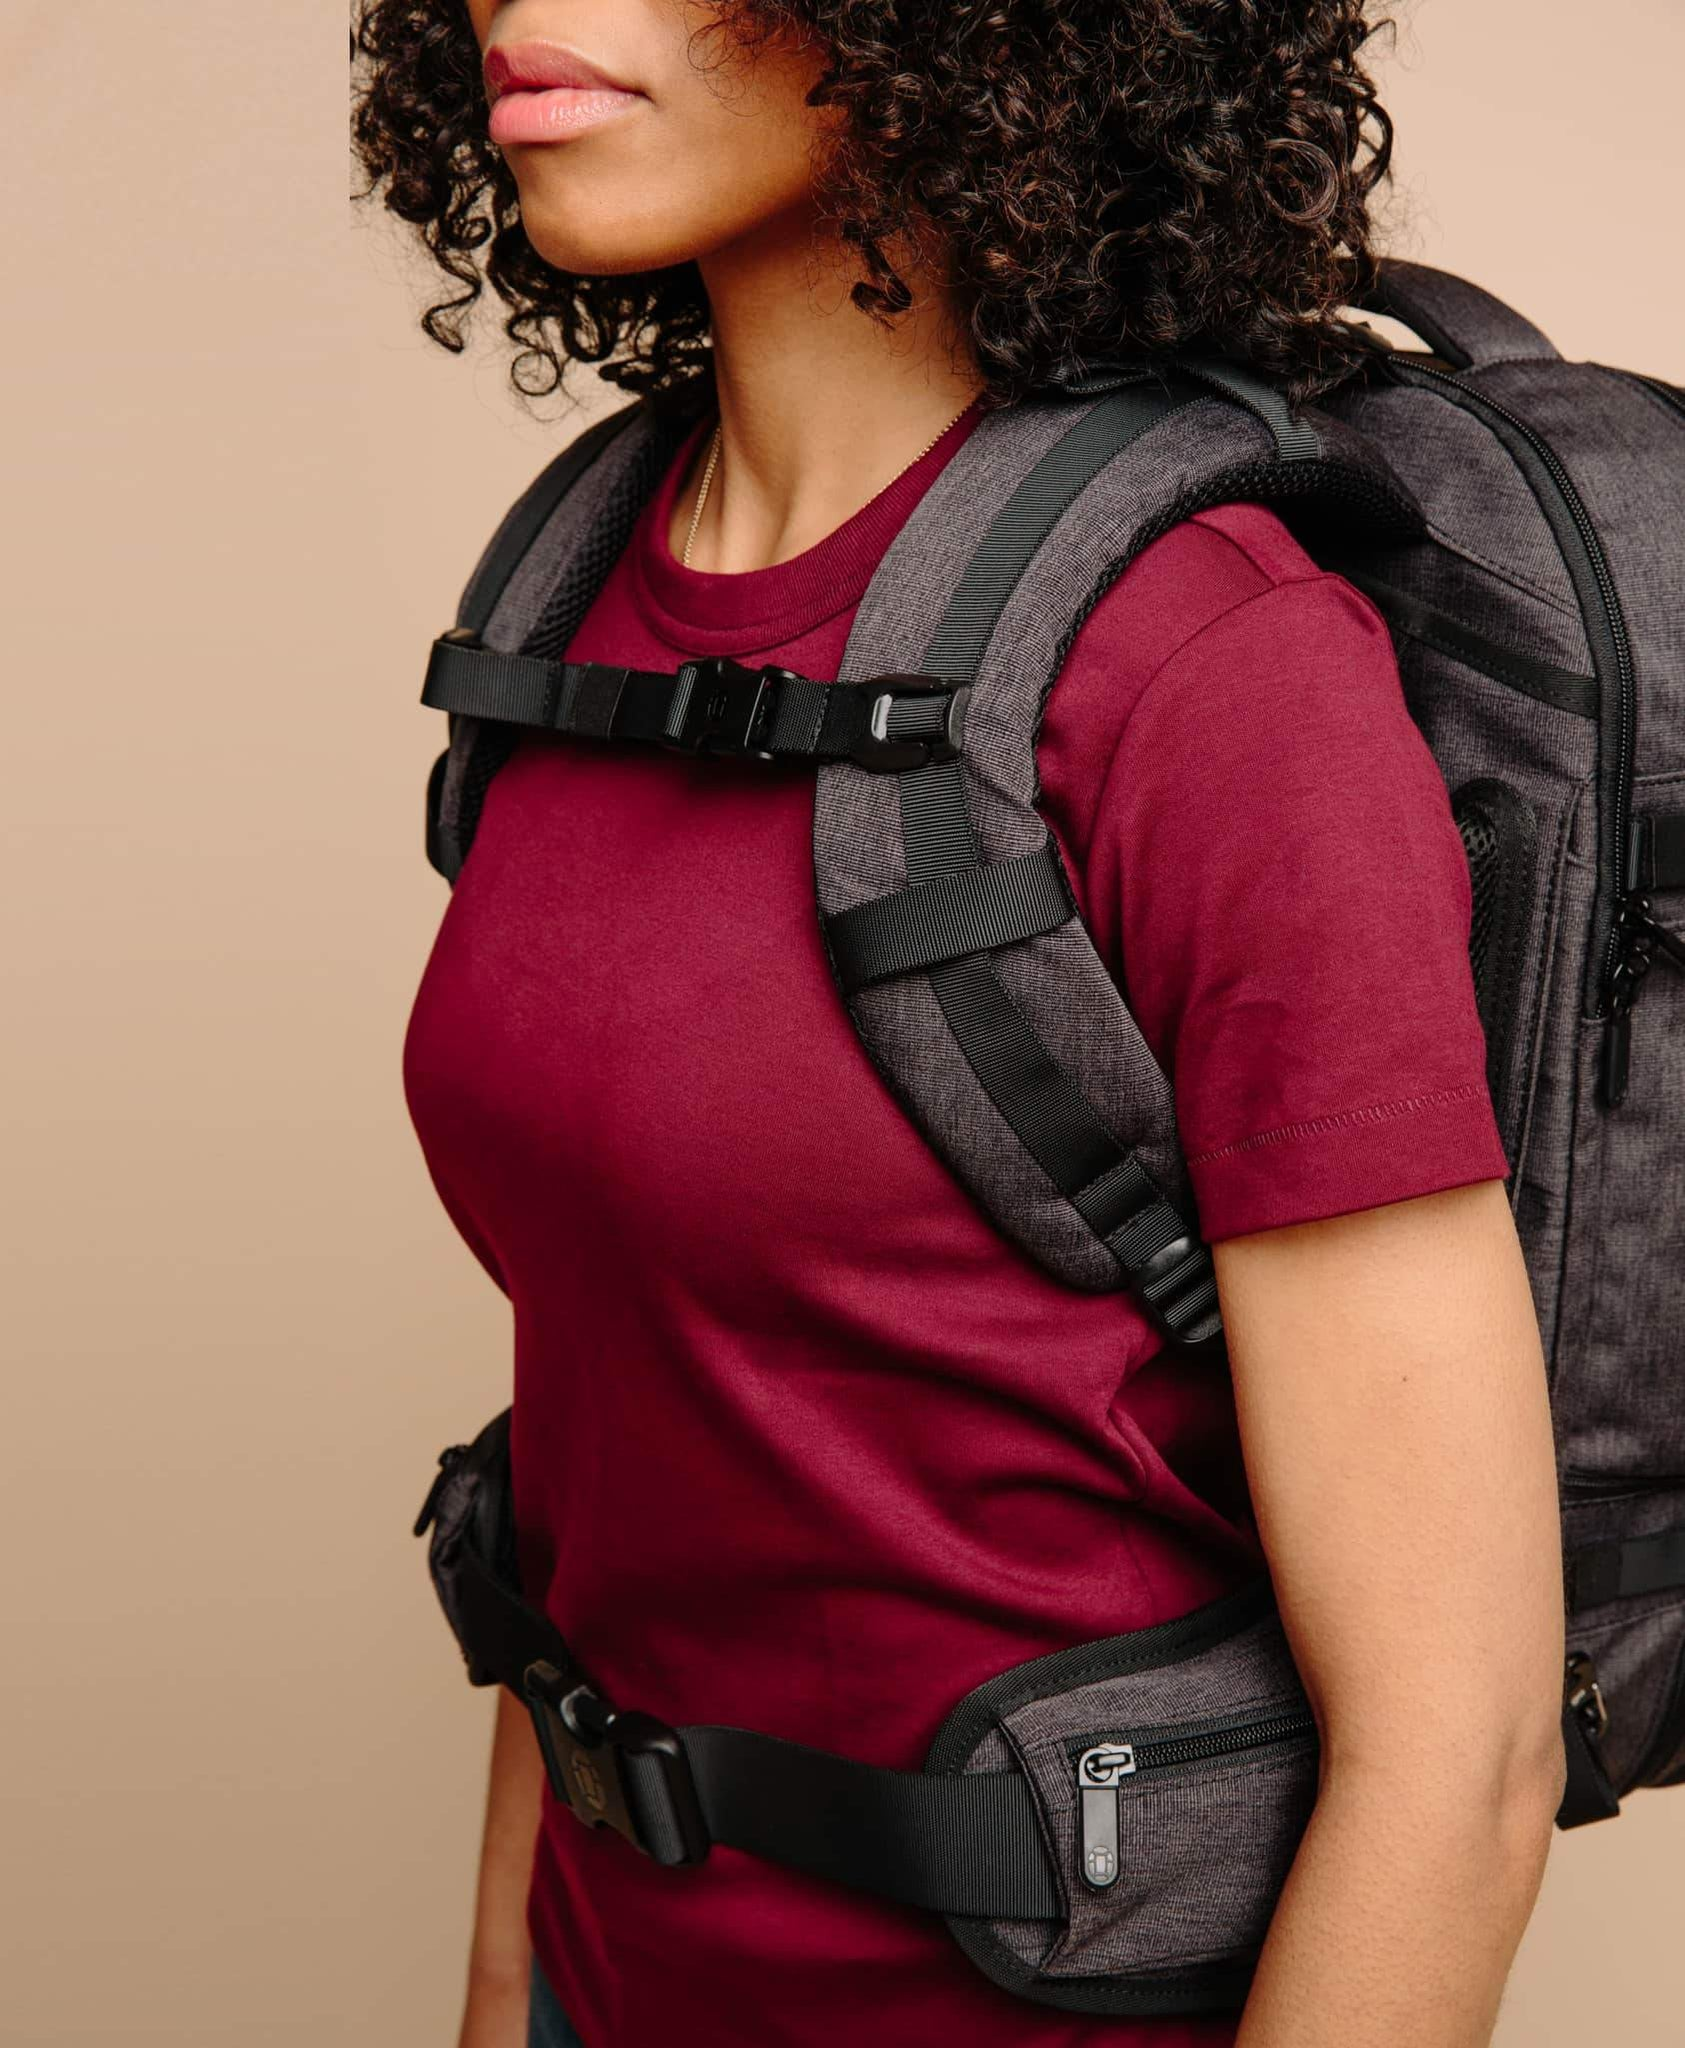 product/ Soft, durable foam shoulder straps are contoured for a woman's frame